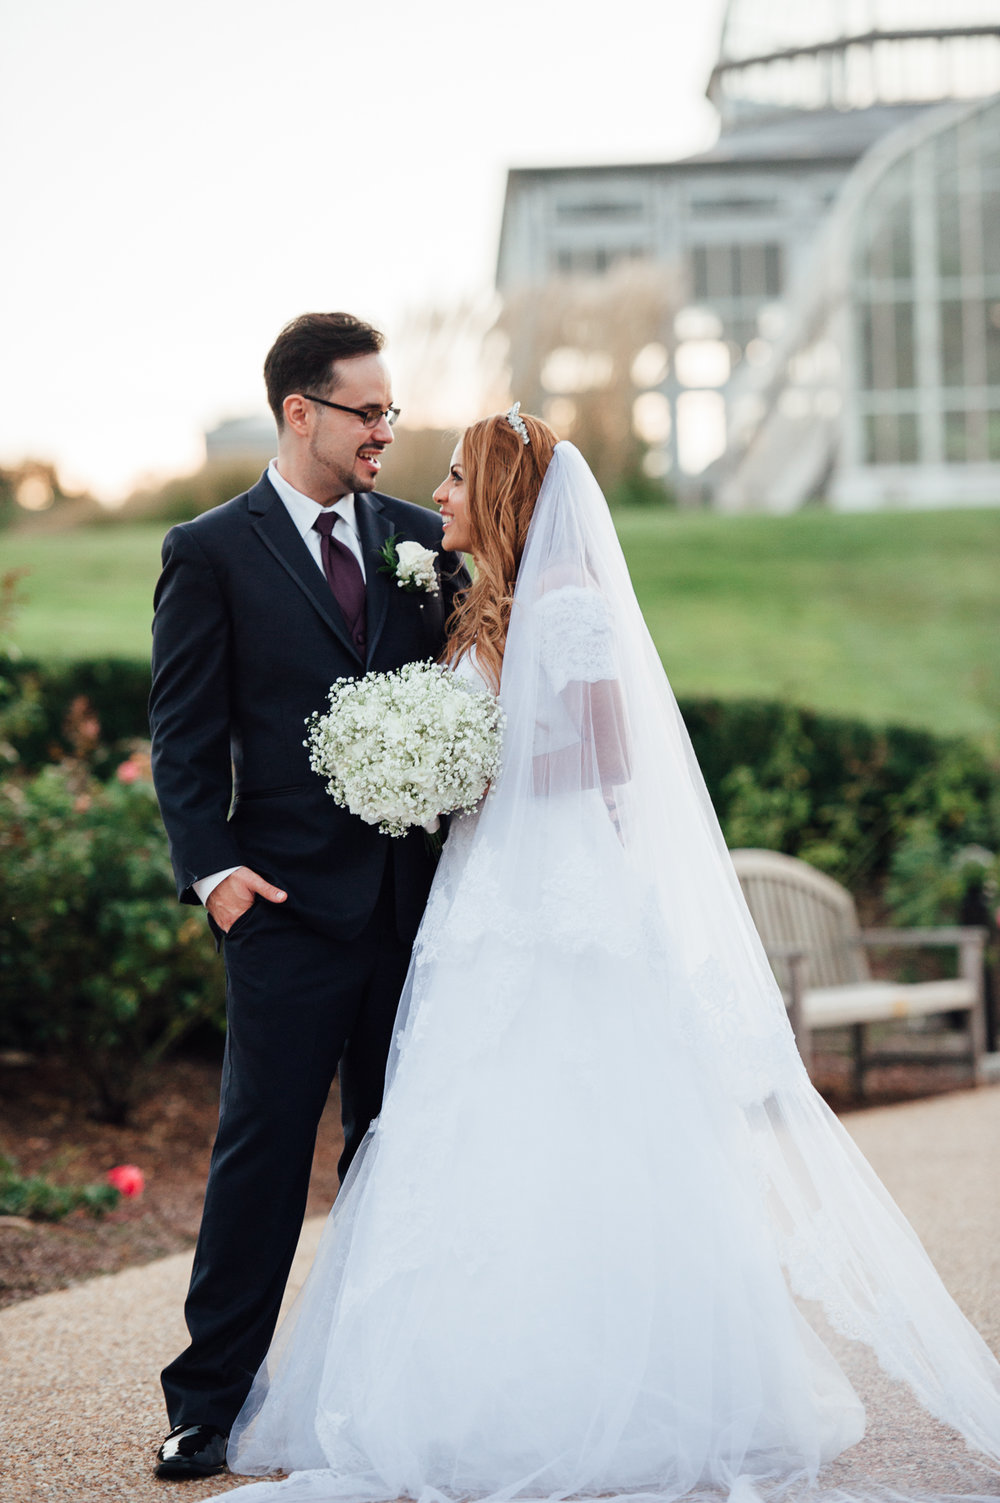 virginiawedding_LewisGinter_youseephotography_FarrinDaniel(31).jpg